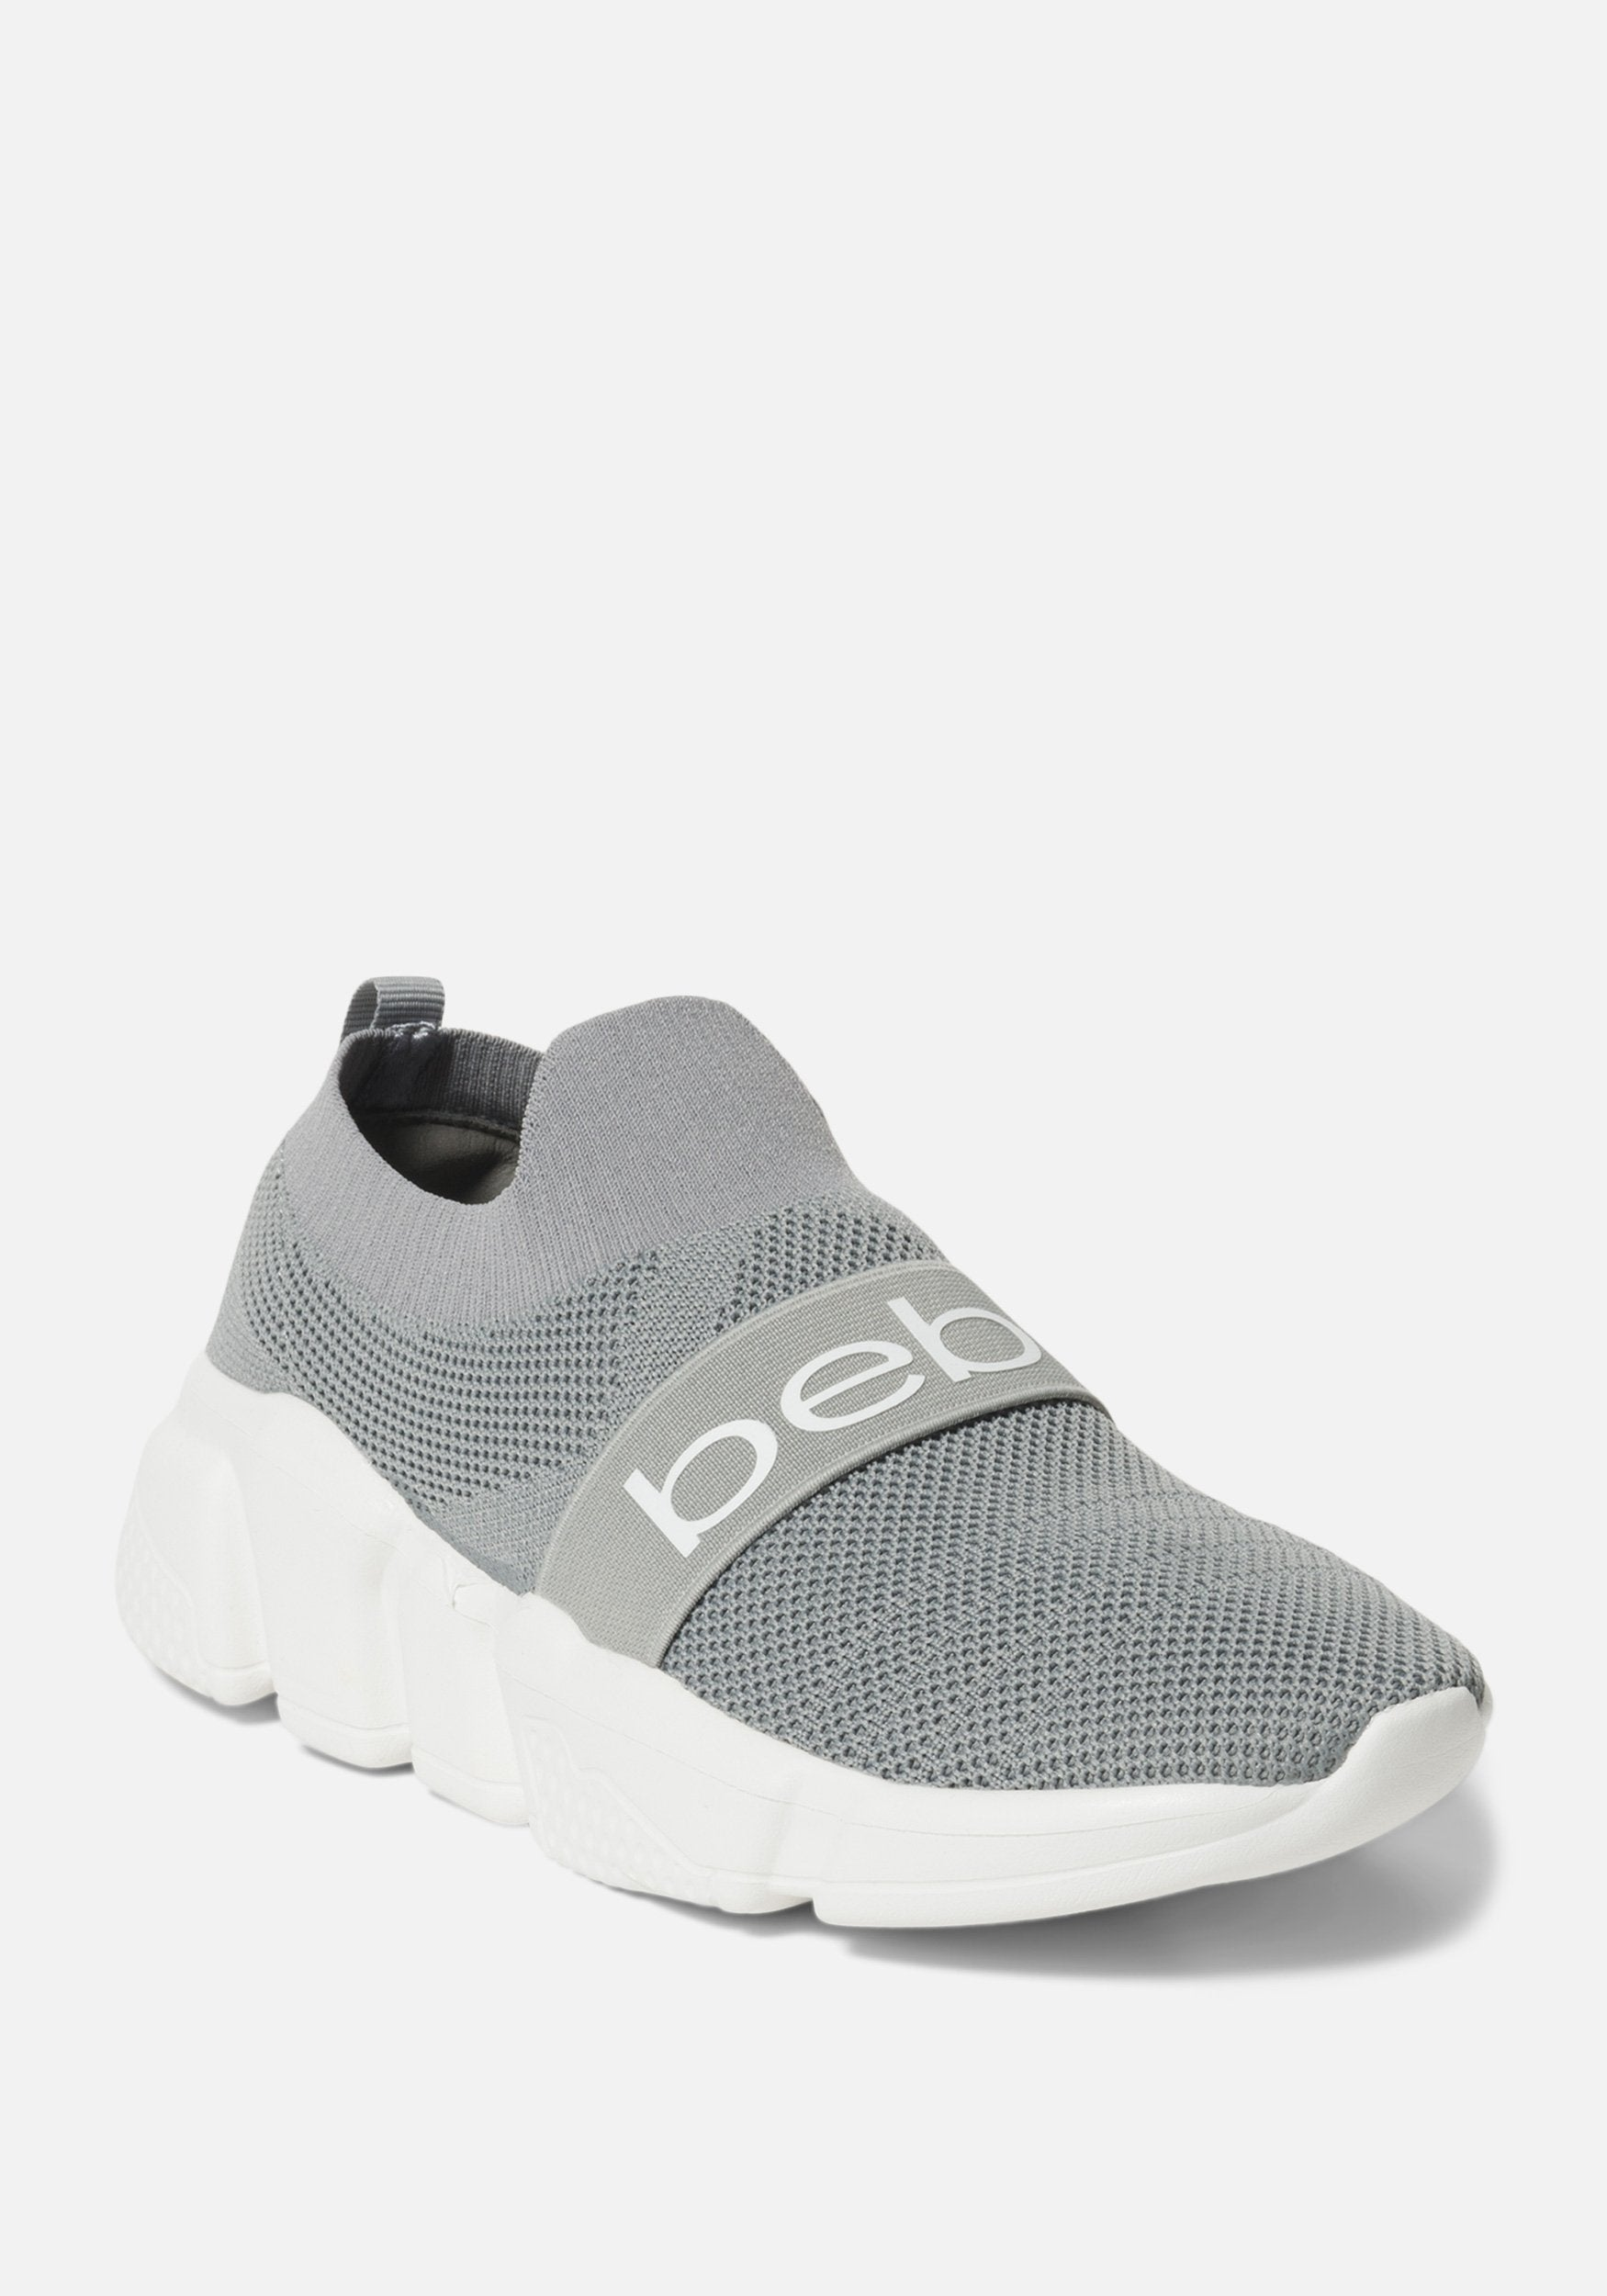 Bebe Women's Aindrea Chunky Sneakers, Size 6 in GREY Synthetic